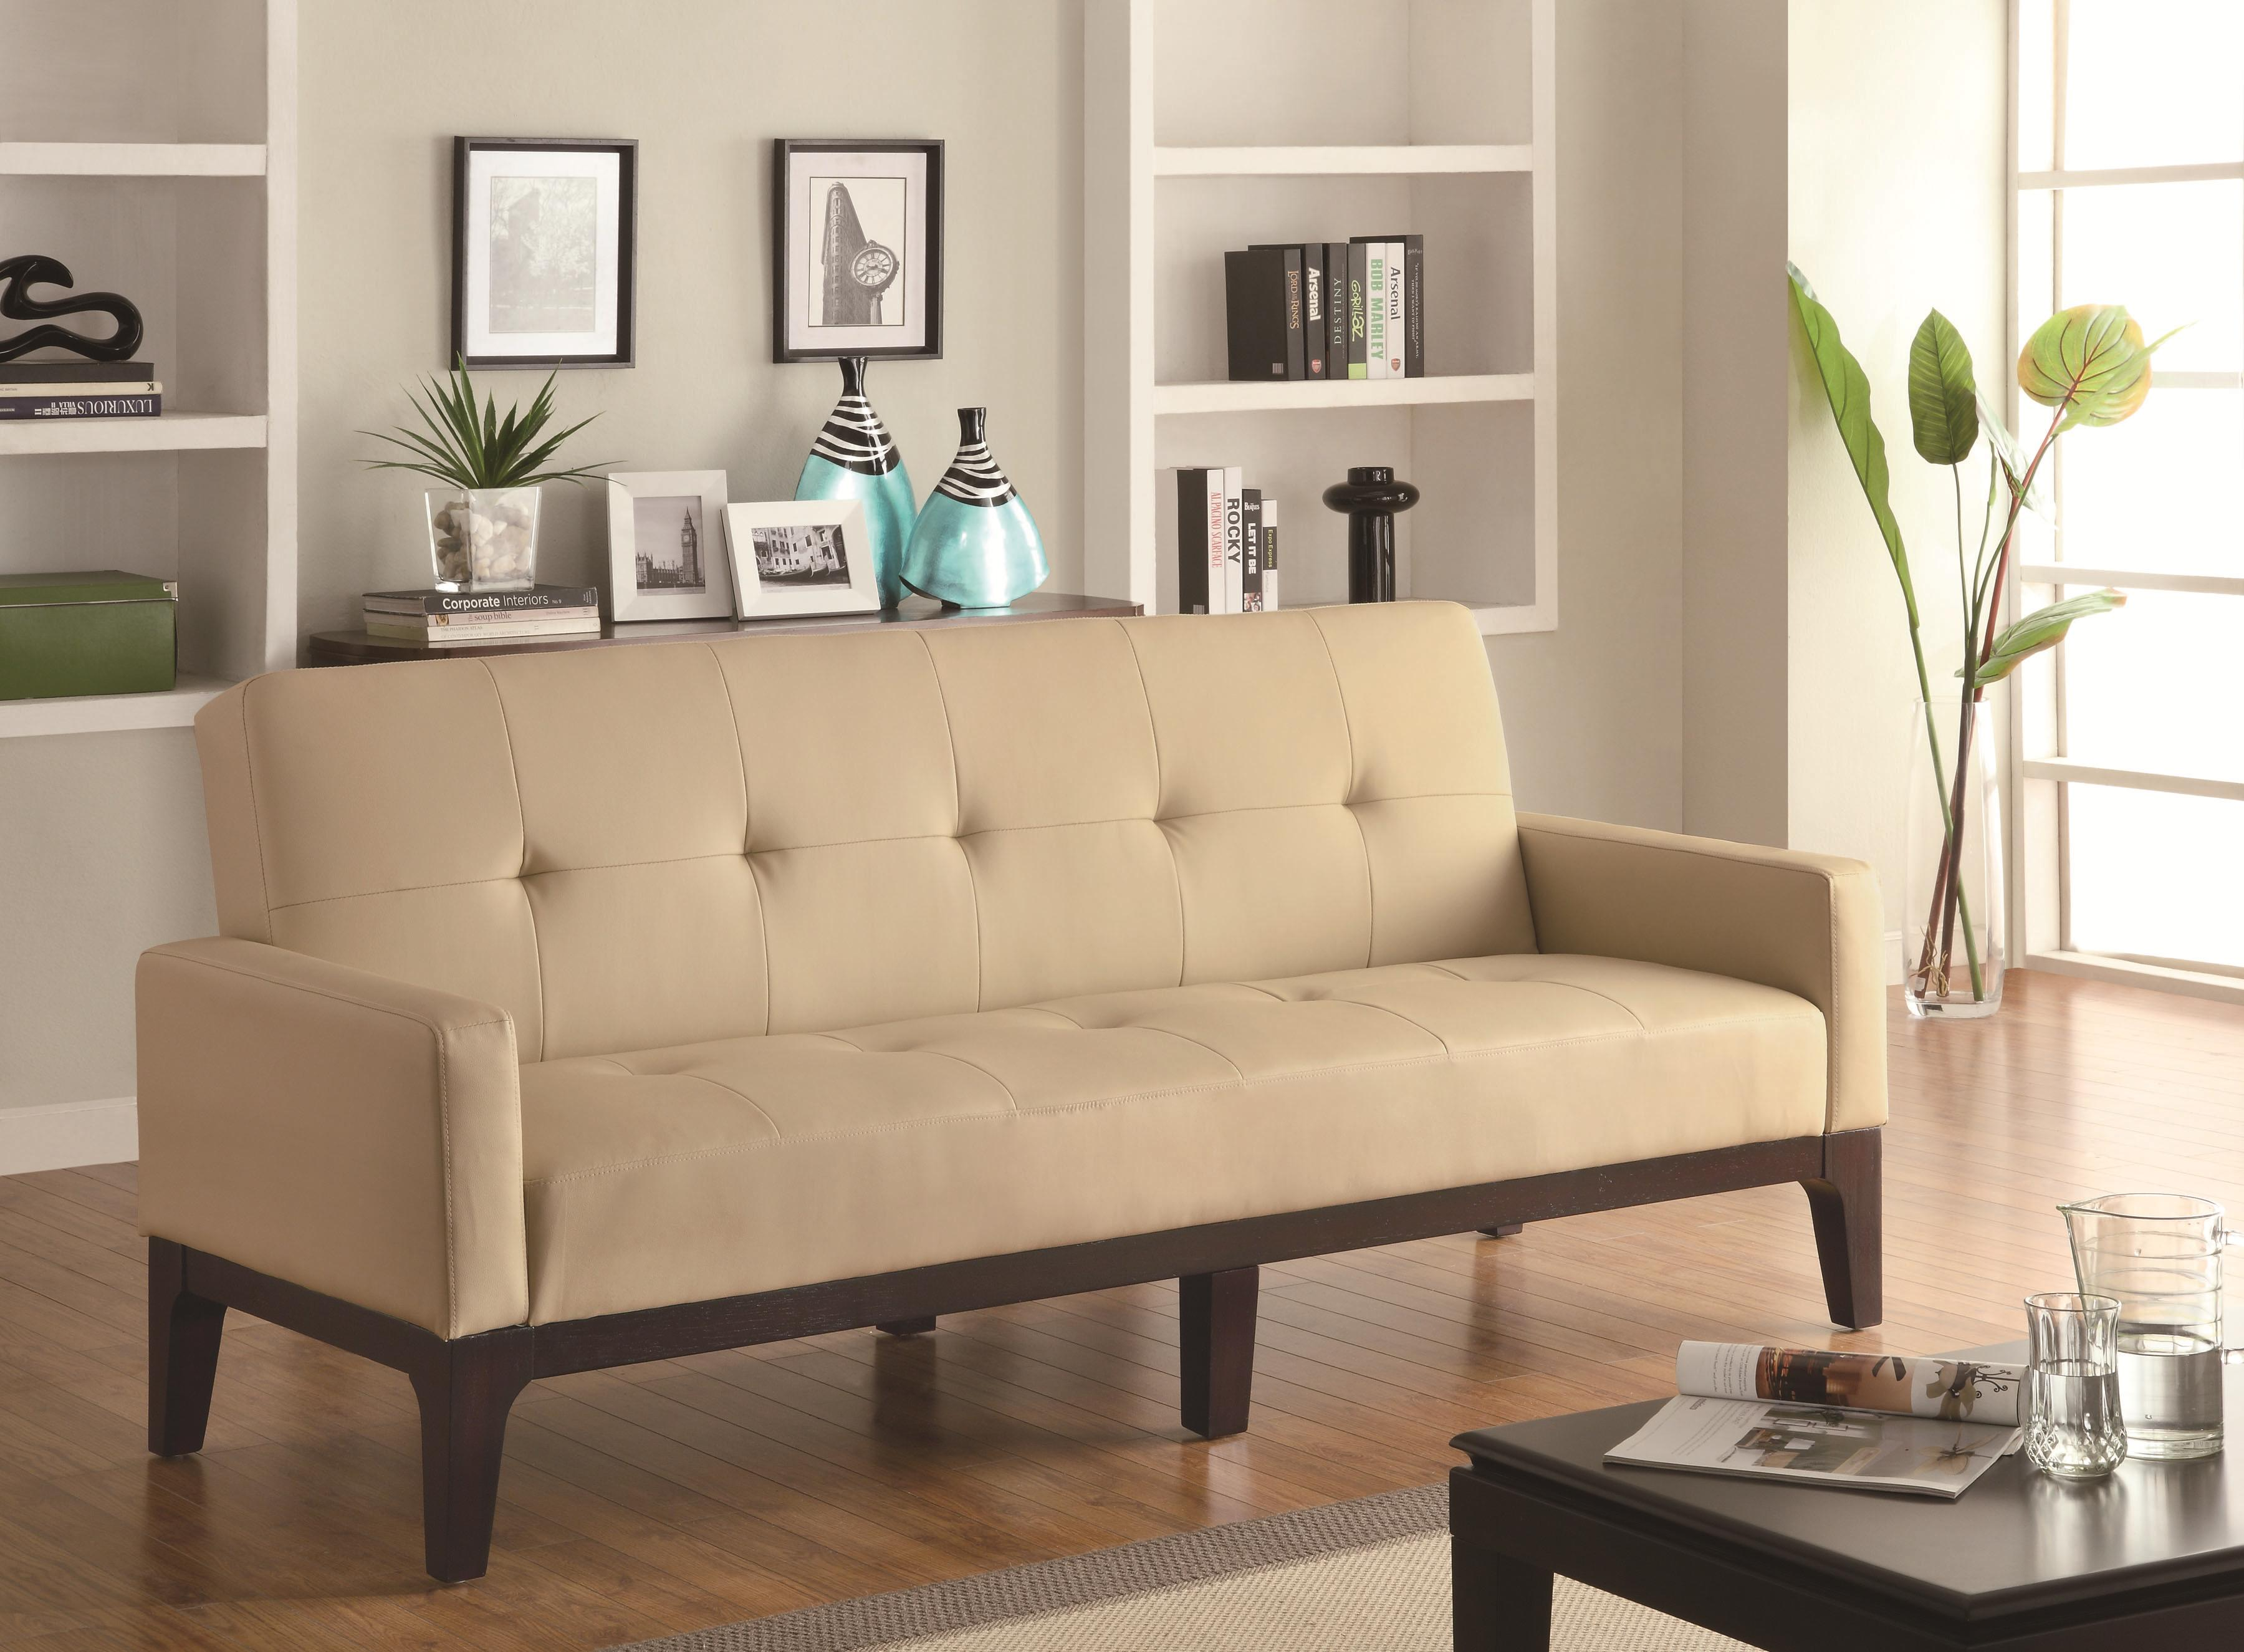 Coaster Sofa Beds and Futons -  Sofa Bed - Item Number: 300226